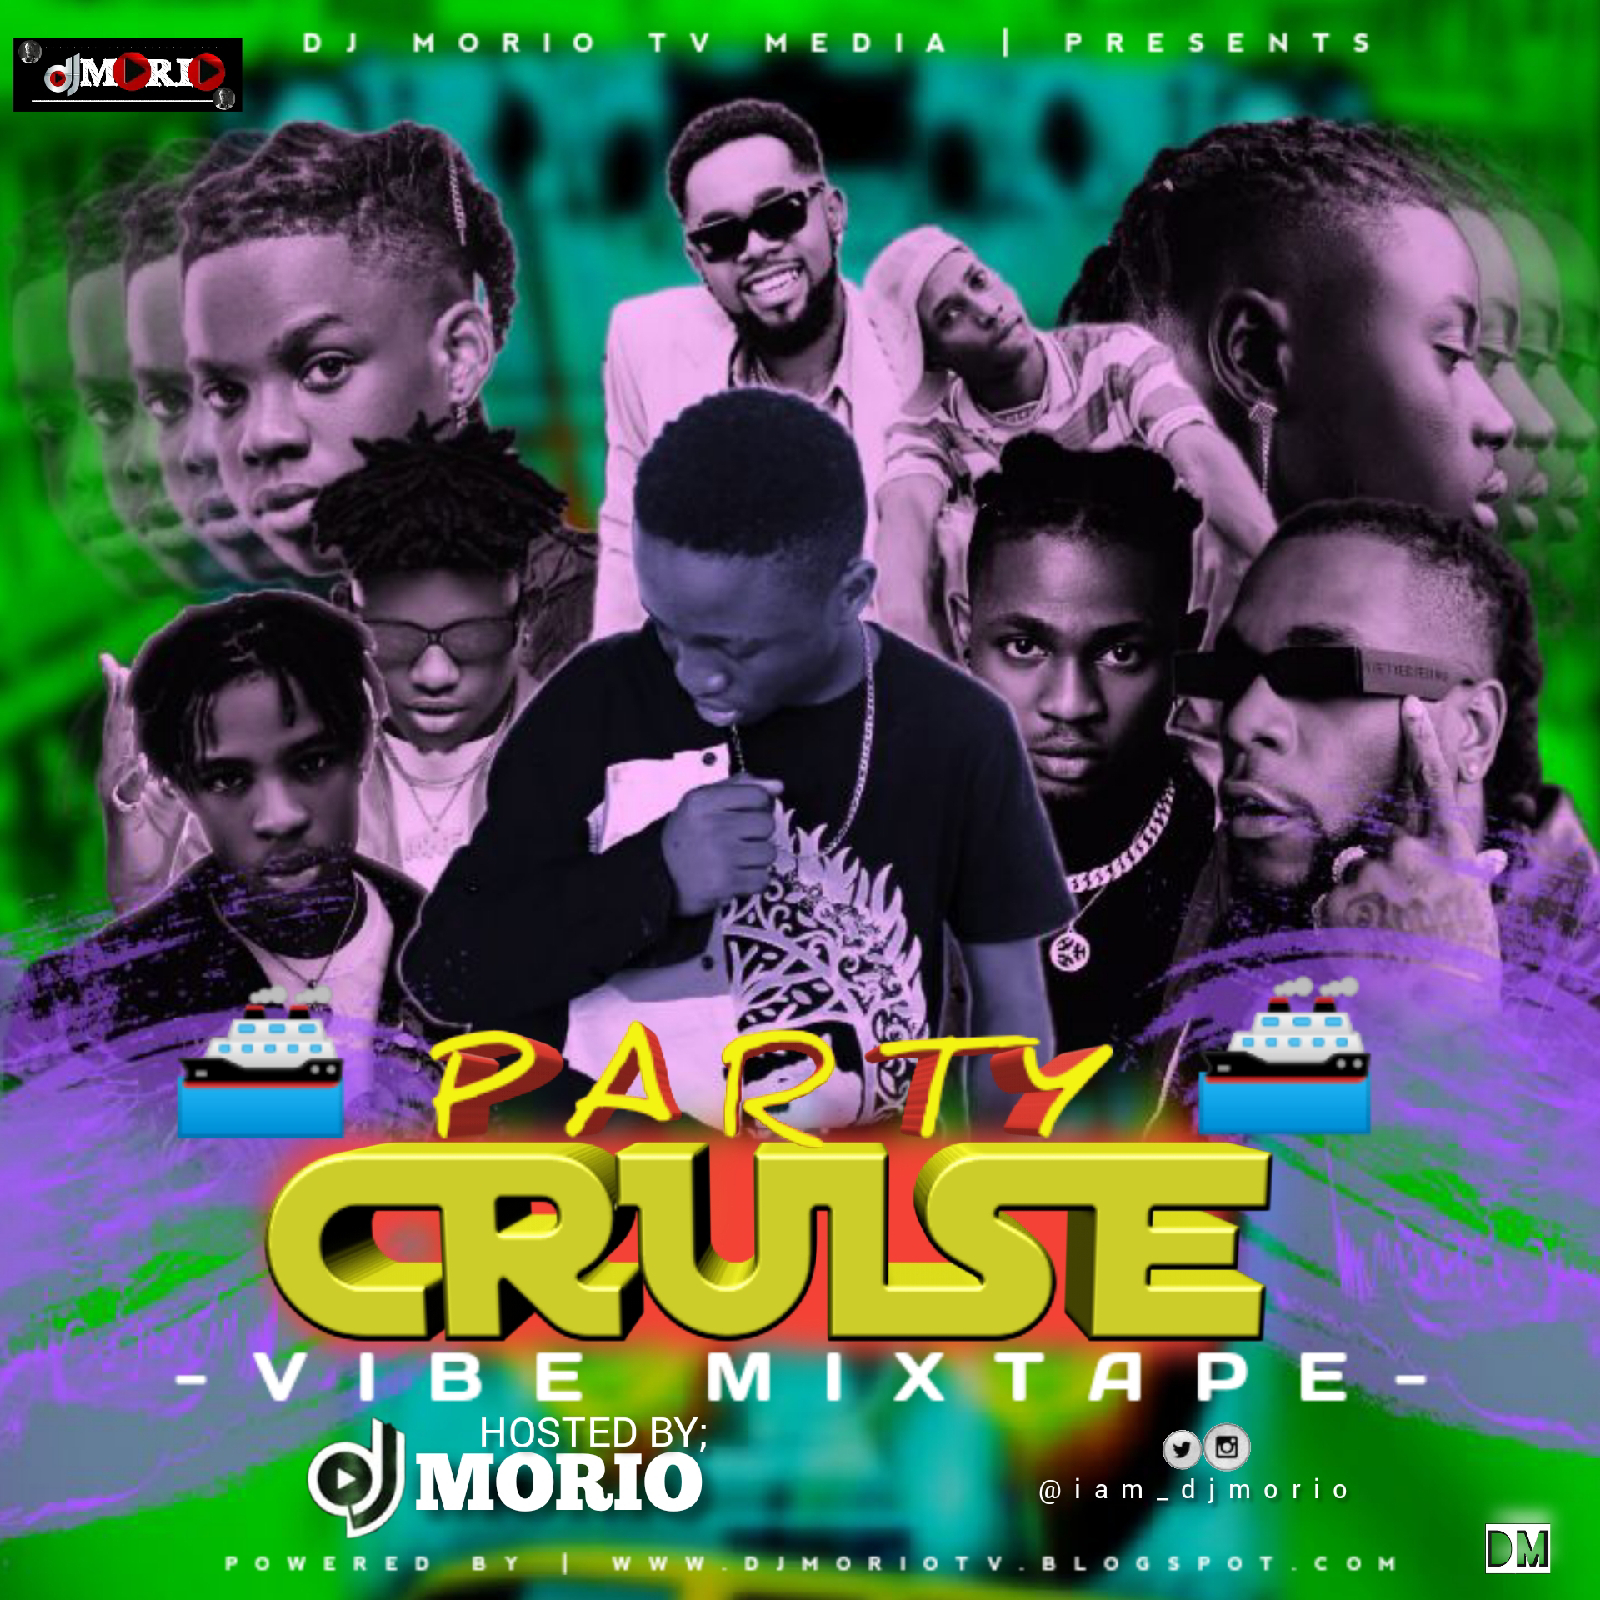 MIXTAPE : DJ MORIO - PARTY CRUISE VIBES MIXTAPE